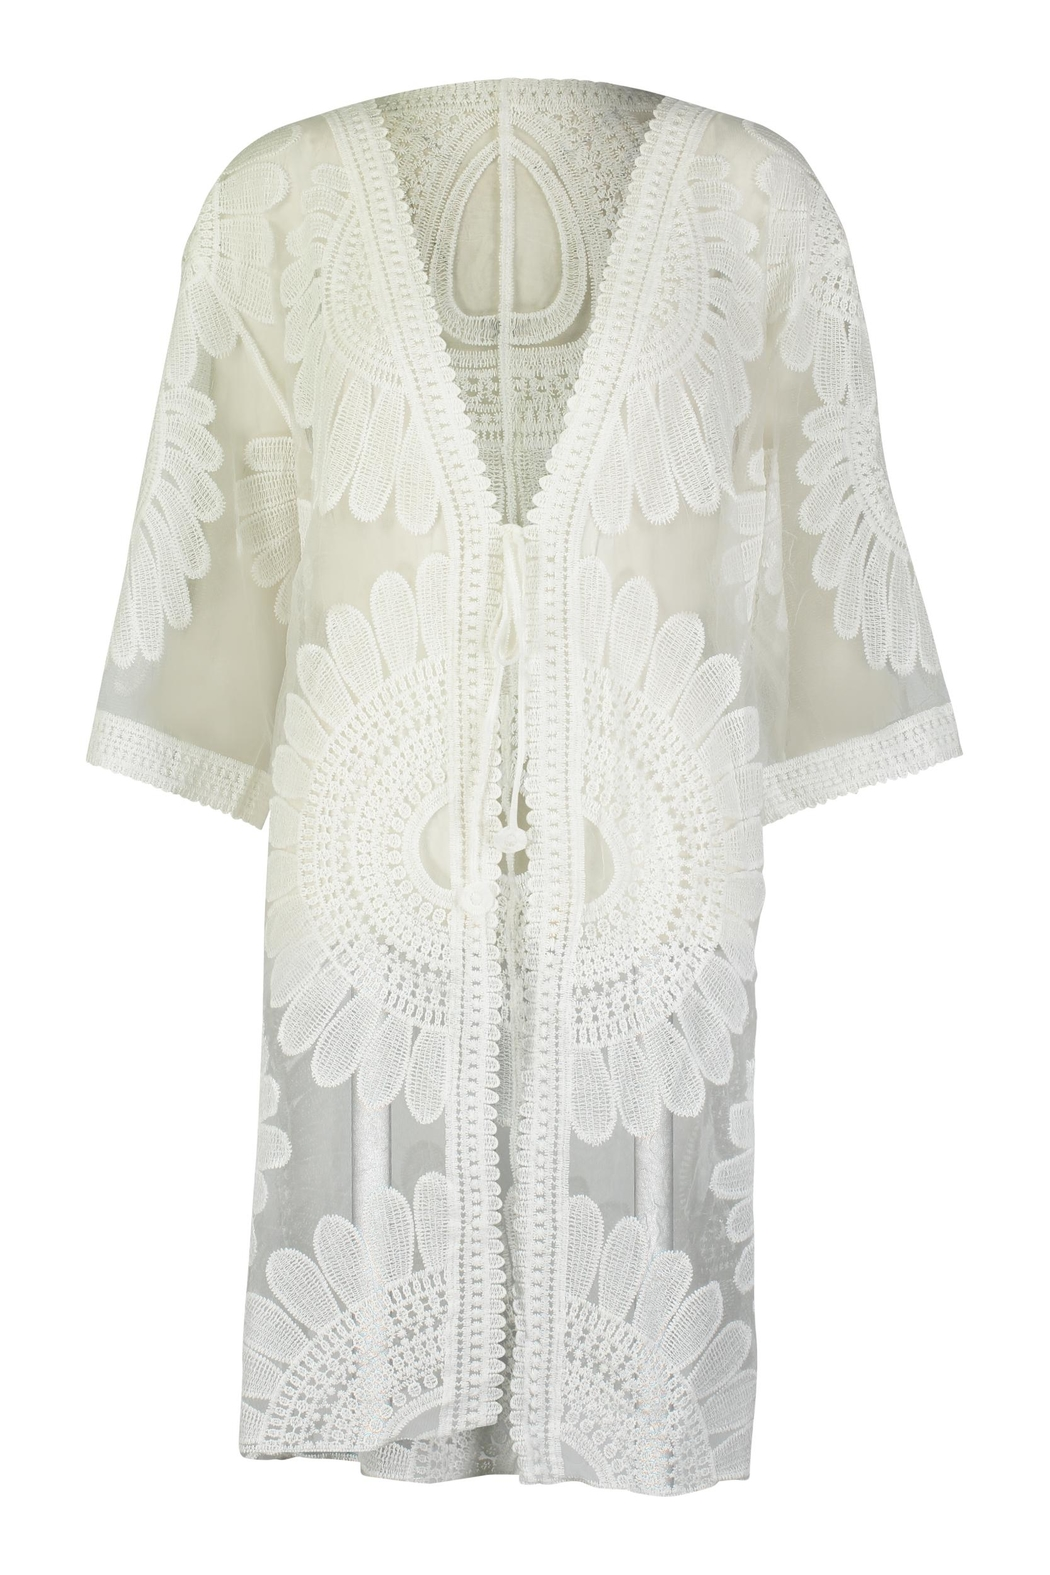 Tempo Paris Lace Embroidered Kimono - Main Image